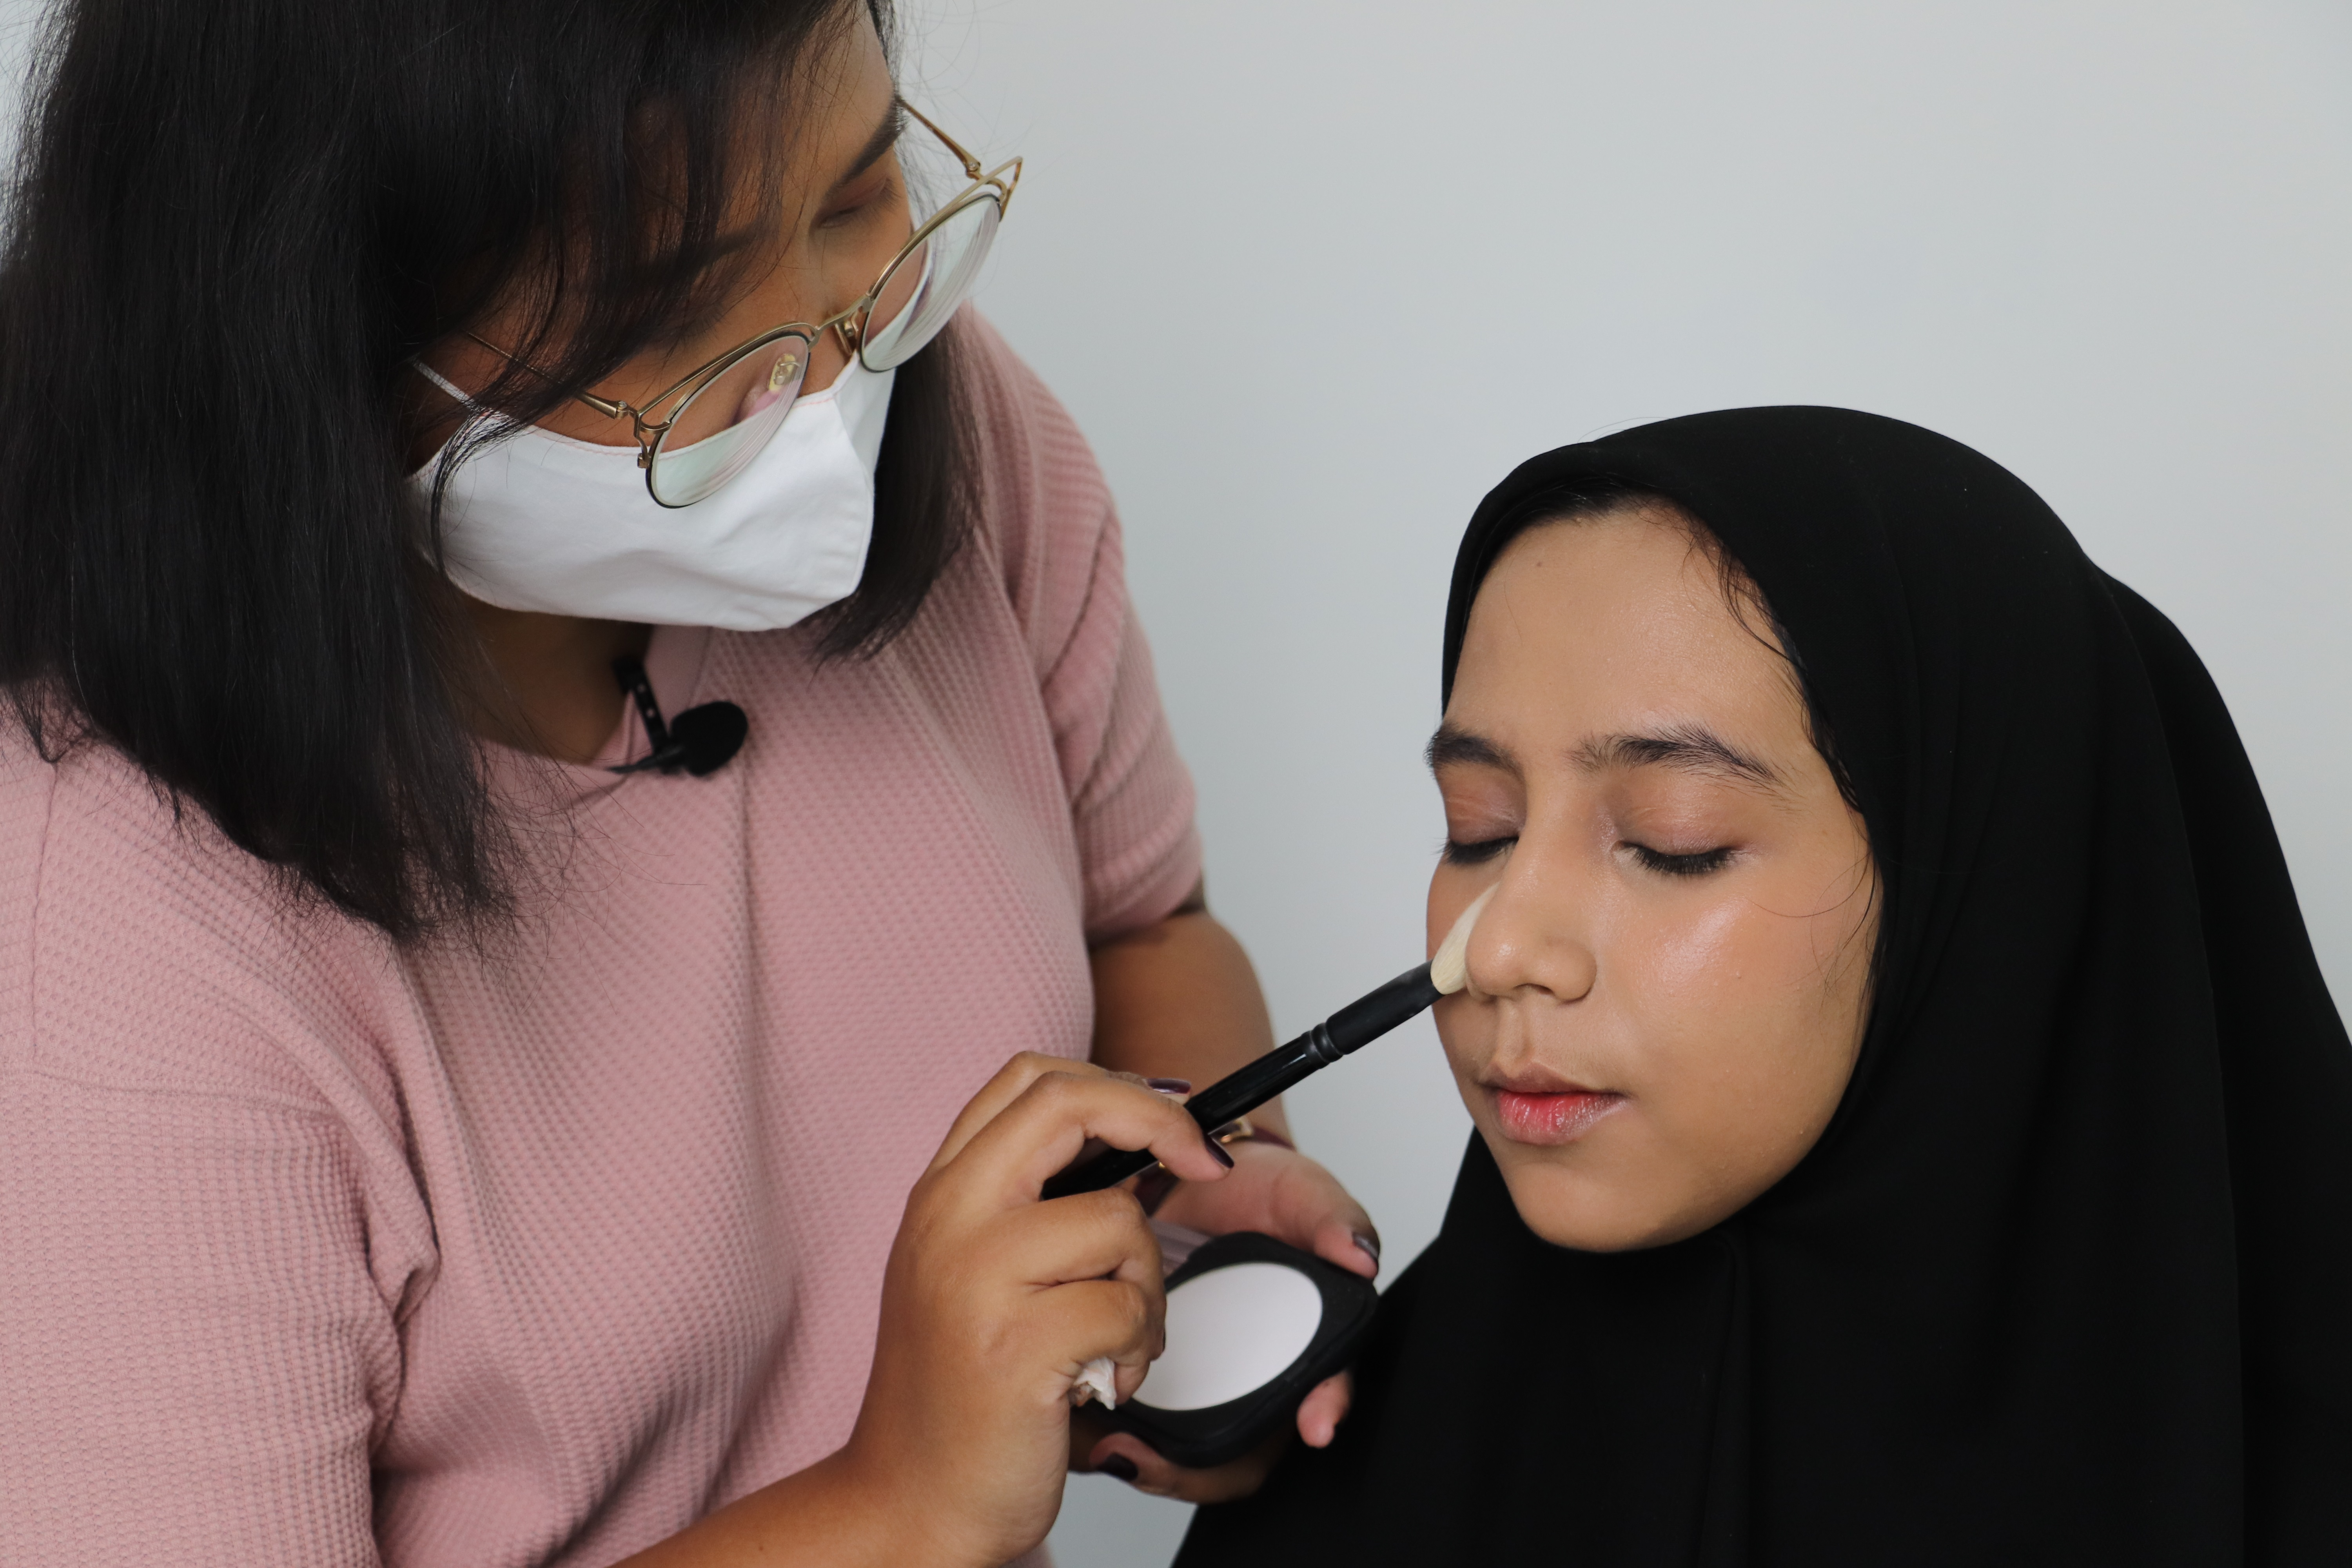 Kcc In Indonesia Holds K Beauty Classes K Theater Performance Korea Net The Official Website Of The Republic Of Korea